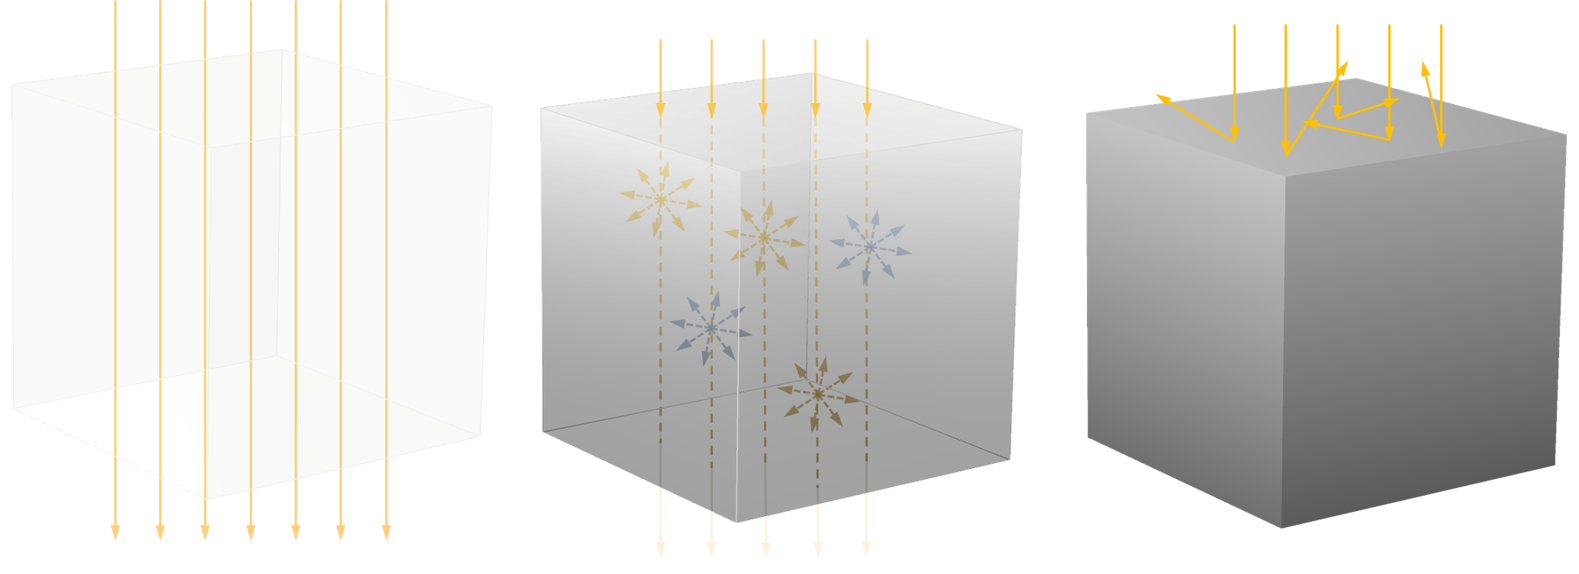 Three side-by-side illustrations showing how radiation travels through different types of matter, including a transparent medium on the left, participating medium in the center, and opaque medium on the right.